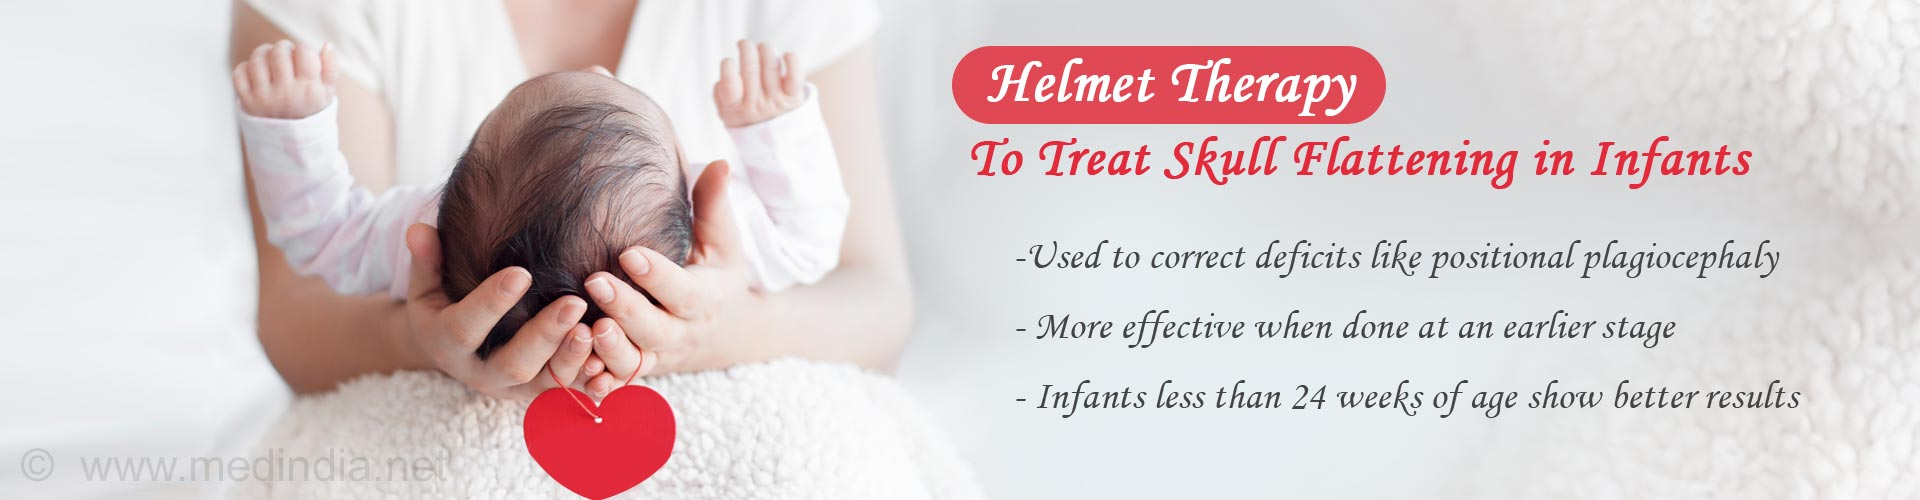 Early Helmet Therapy Shows Better Results For Infants With Skull Flattening